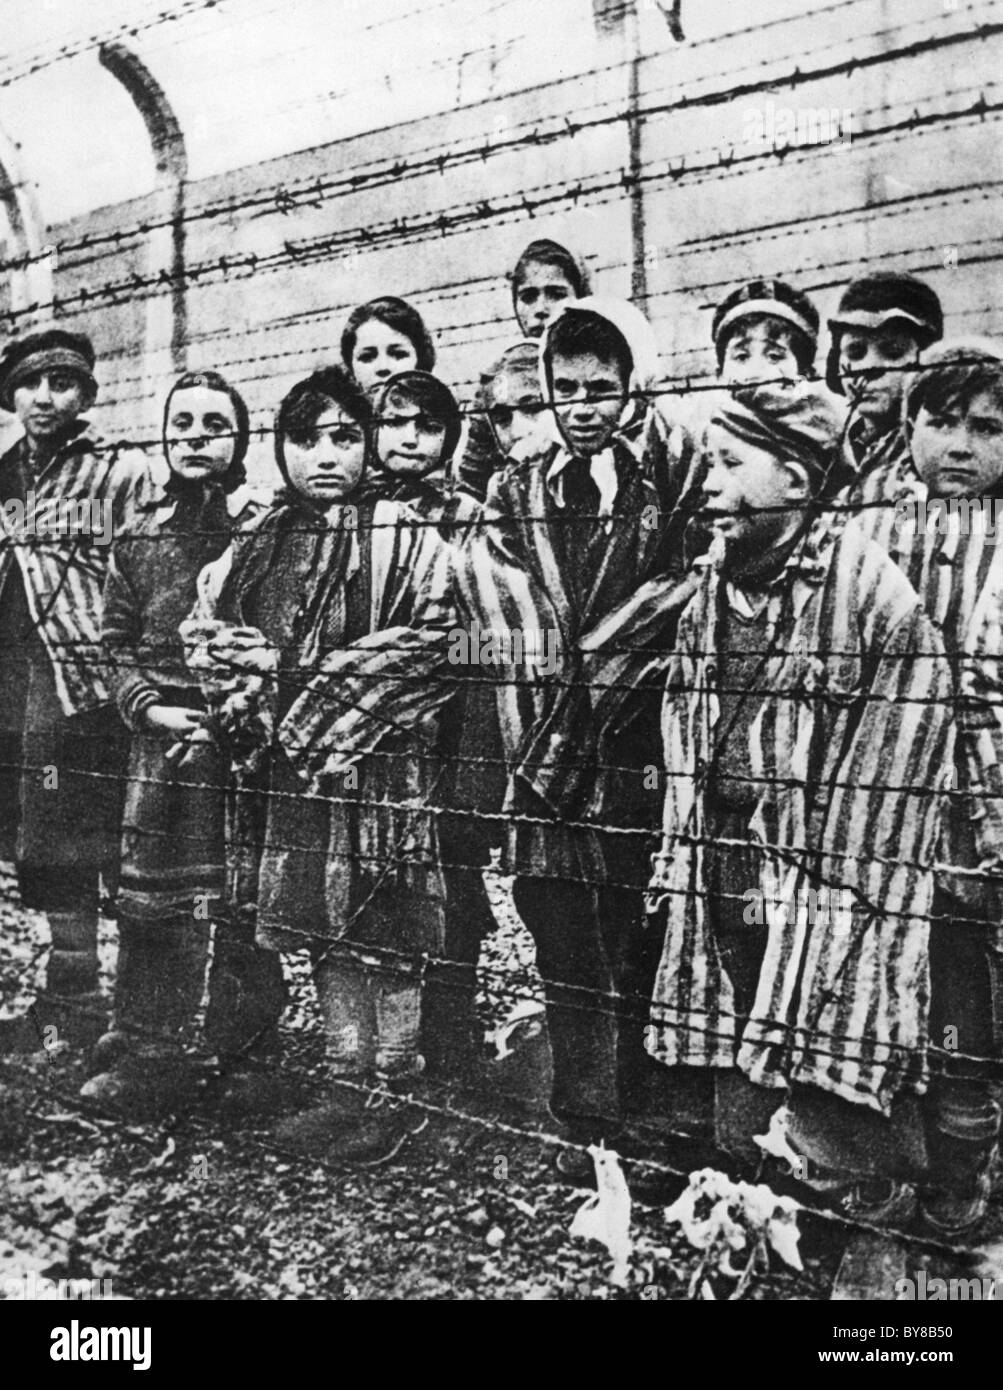 AUSCHWITZ CONCENTRATION CAMP children photographed by Russians who liberated the camp in January 1945 - Stock Image